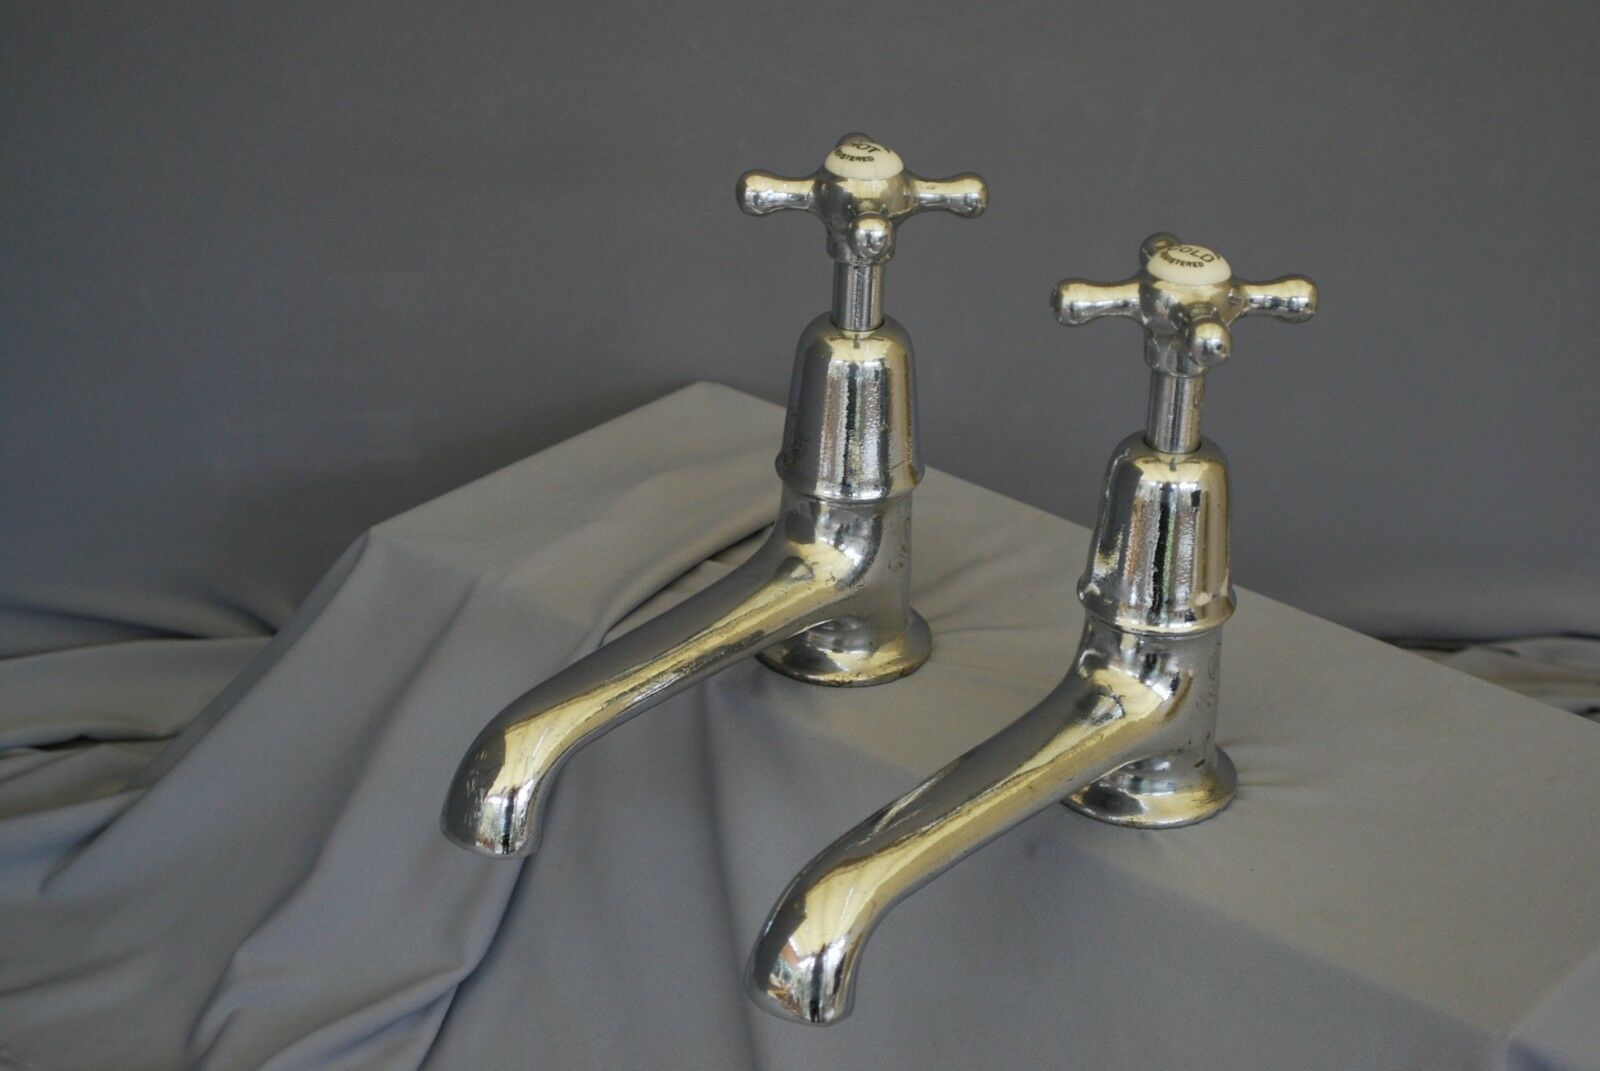 Ancien bain Robinets Grand Chrome Long 6  Reach Régénéré, remis à neuf rétro robinets